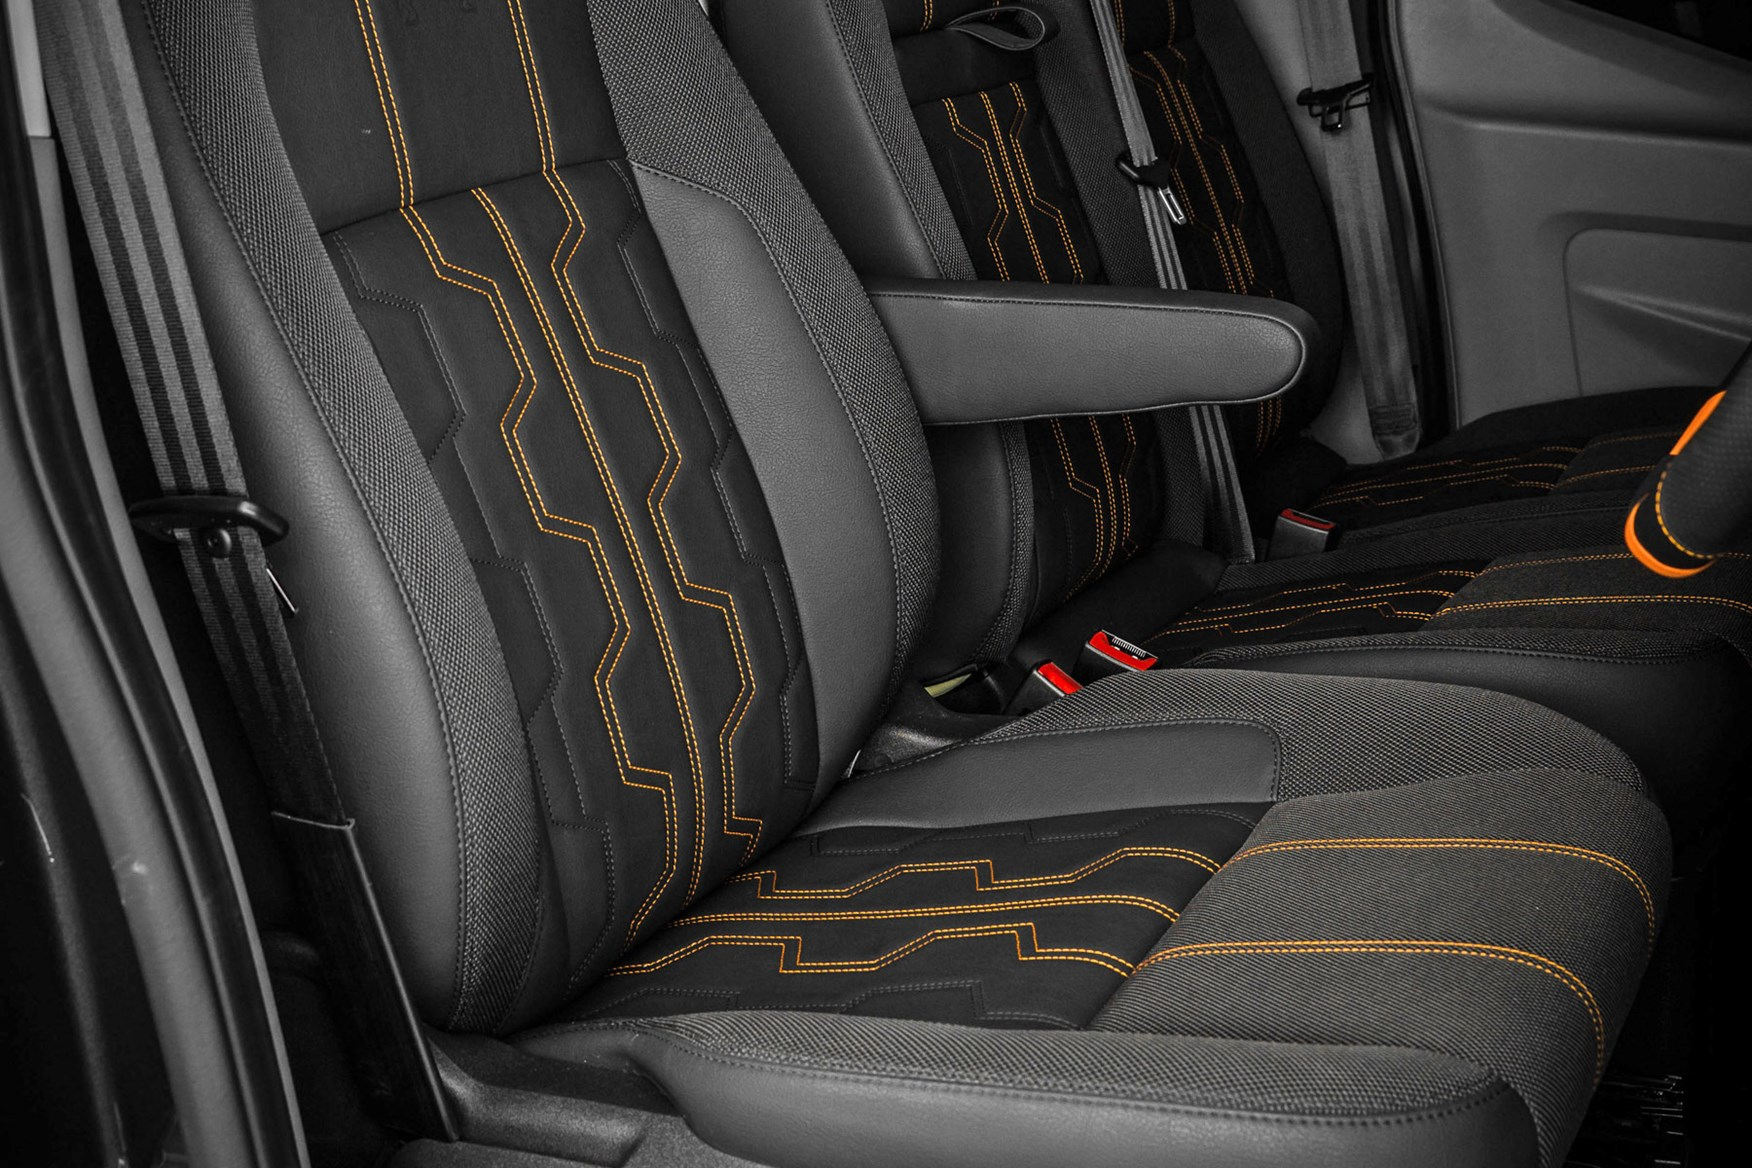 09d5aea9d1 ... Ford Transit Guy Martin Edition review - upgraded seats with orange  detailing ...